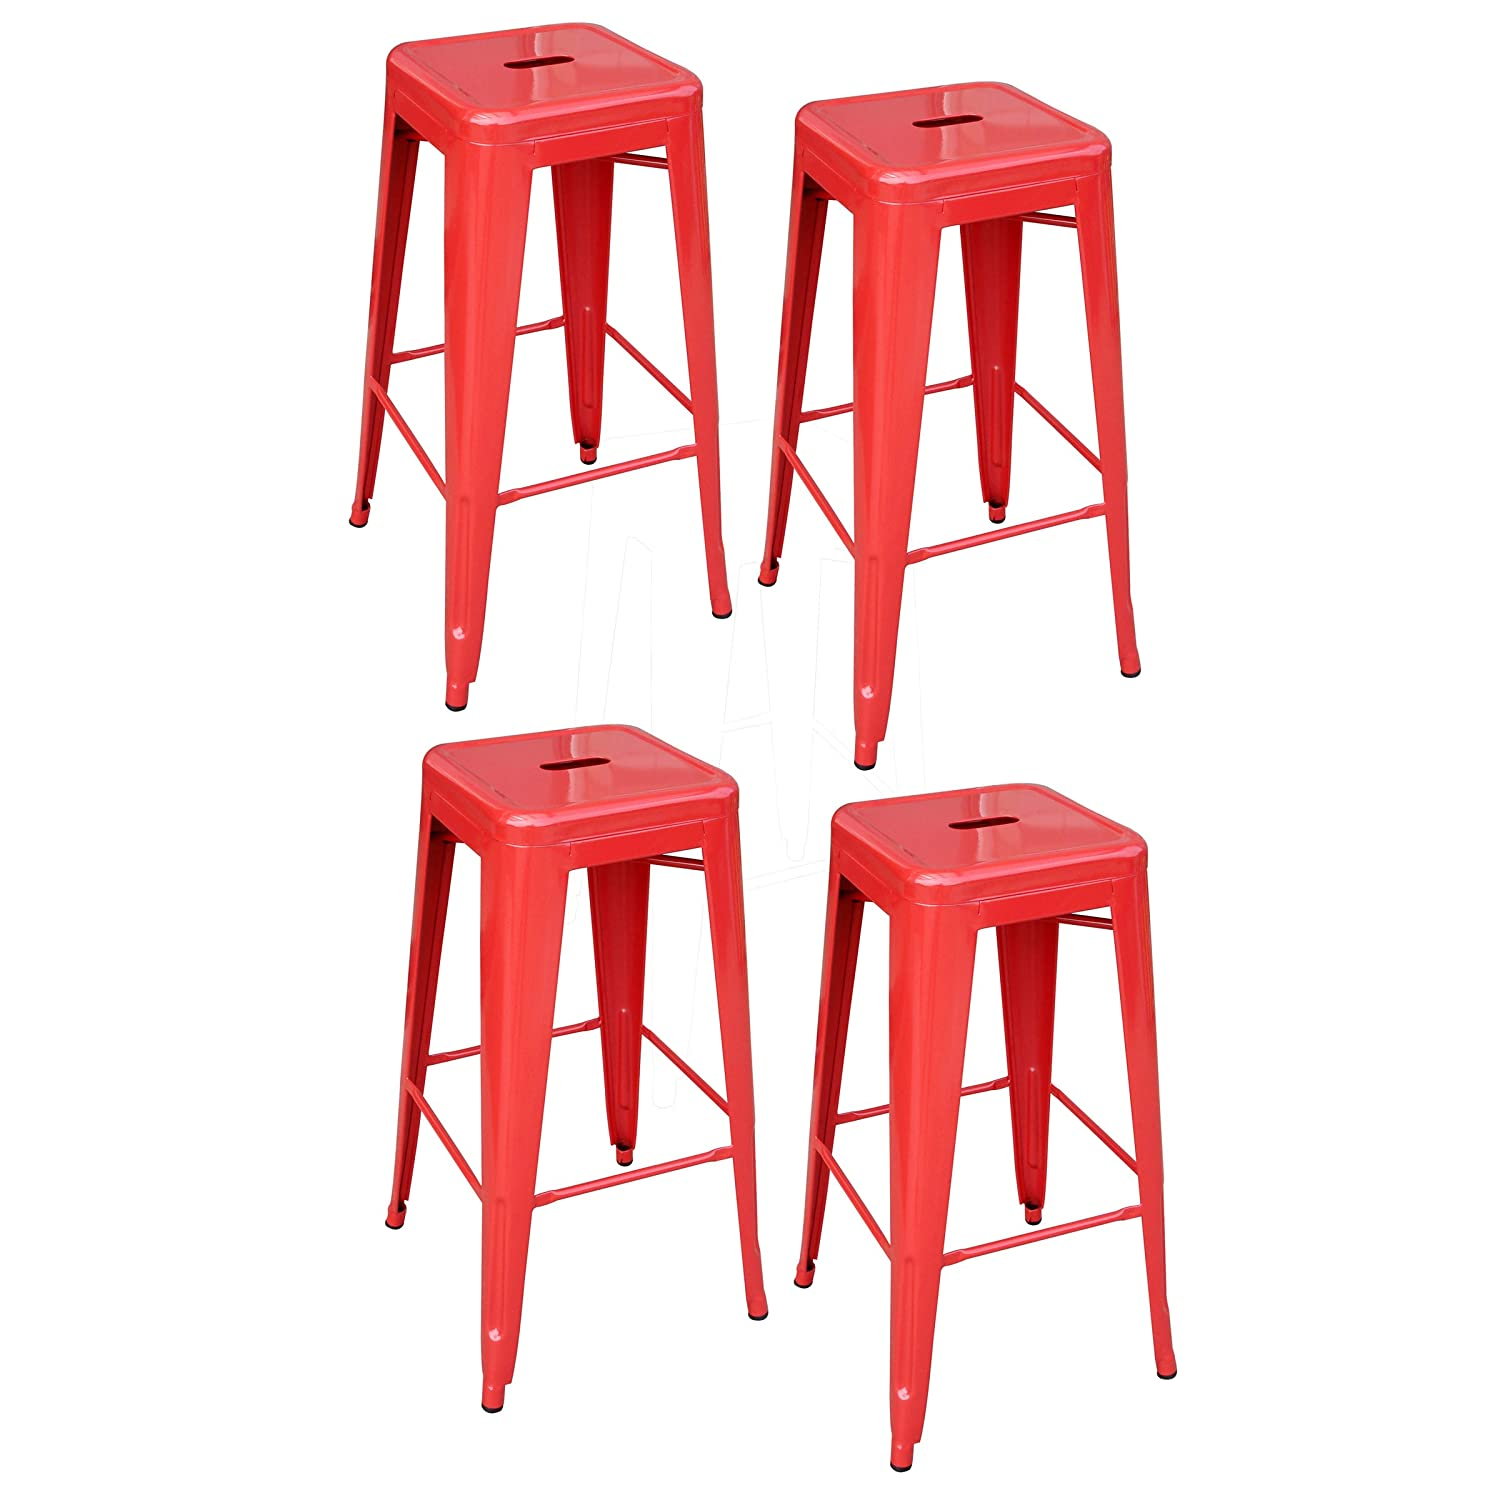 Amazon.com AmeriHome Metal Bar Stool Set 30-Inch Red Set of 4 Kitchen u0026 Dining  sc 1 st  Amazon.com : red bar stool chairs - islam-shia.org